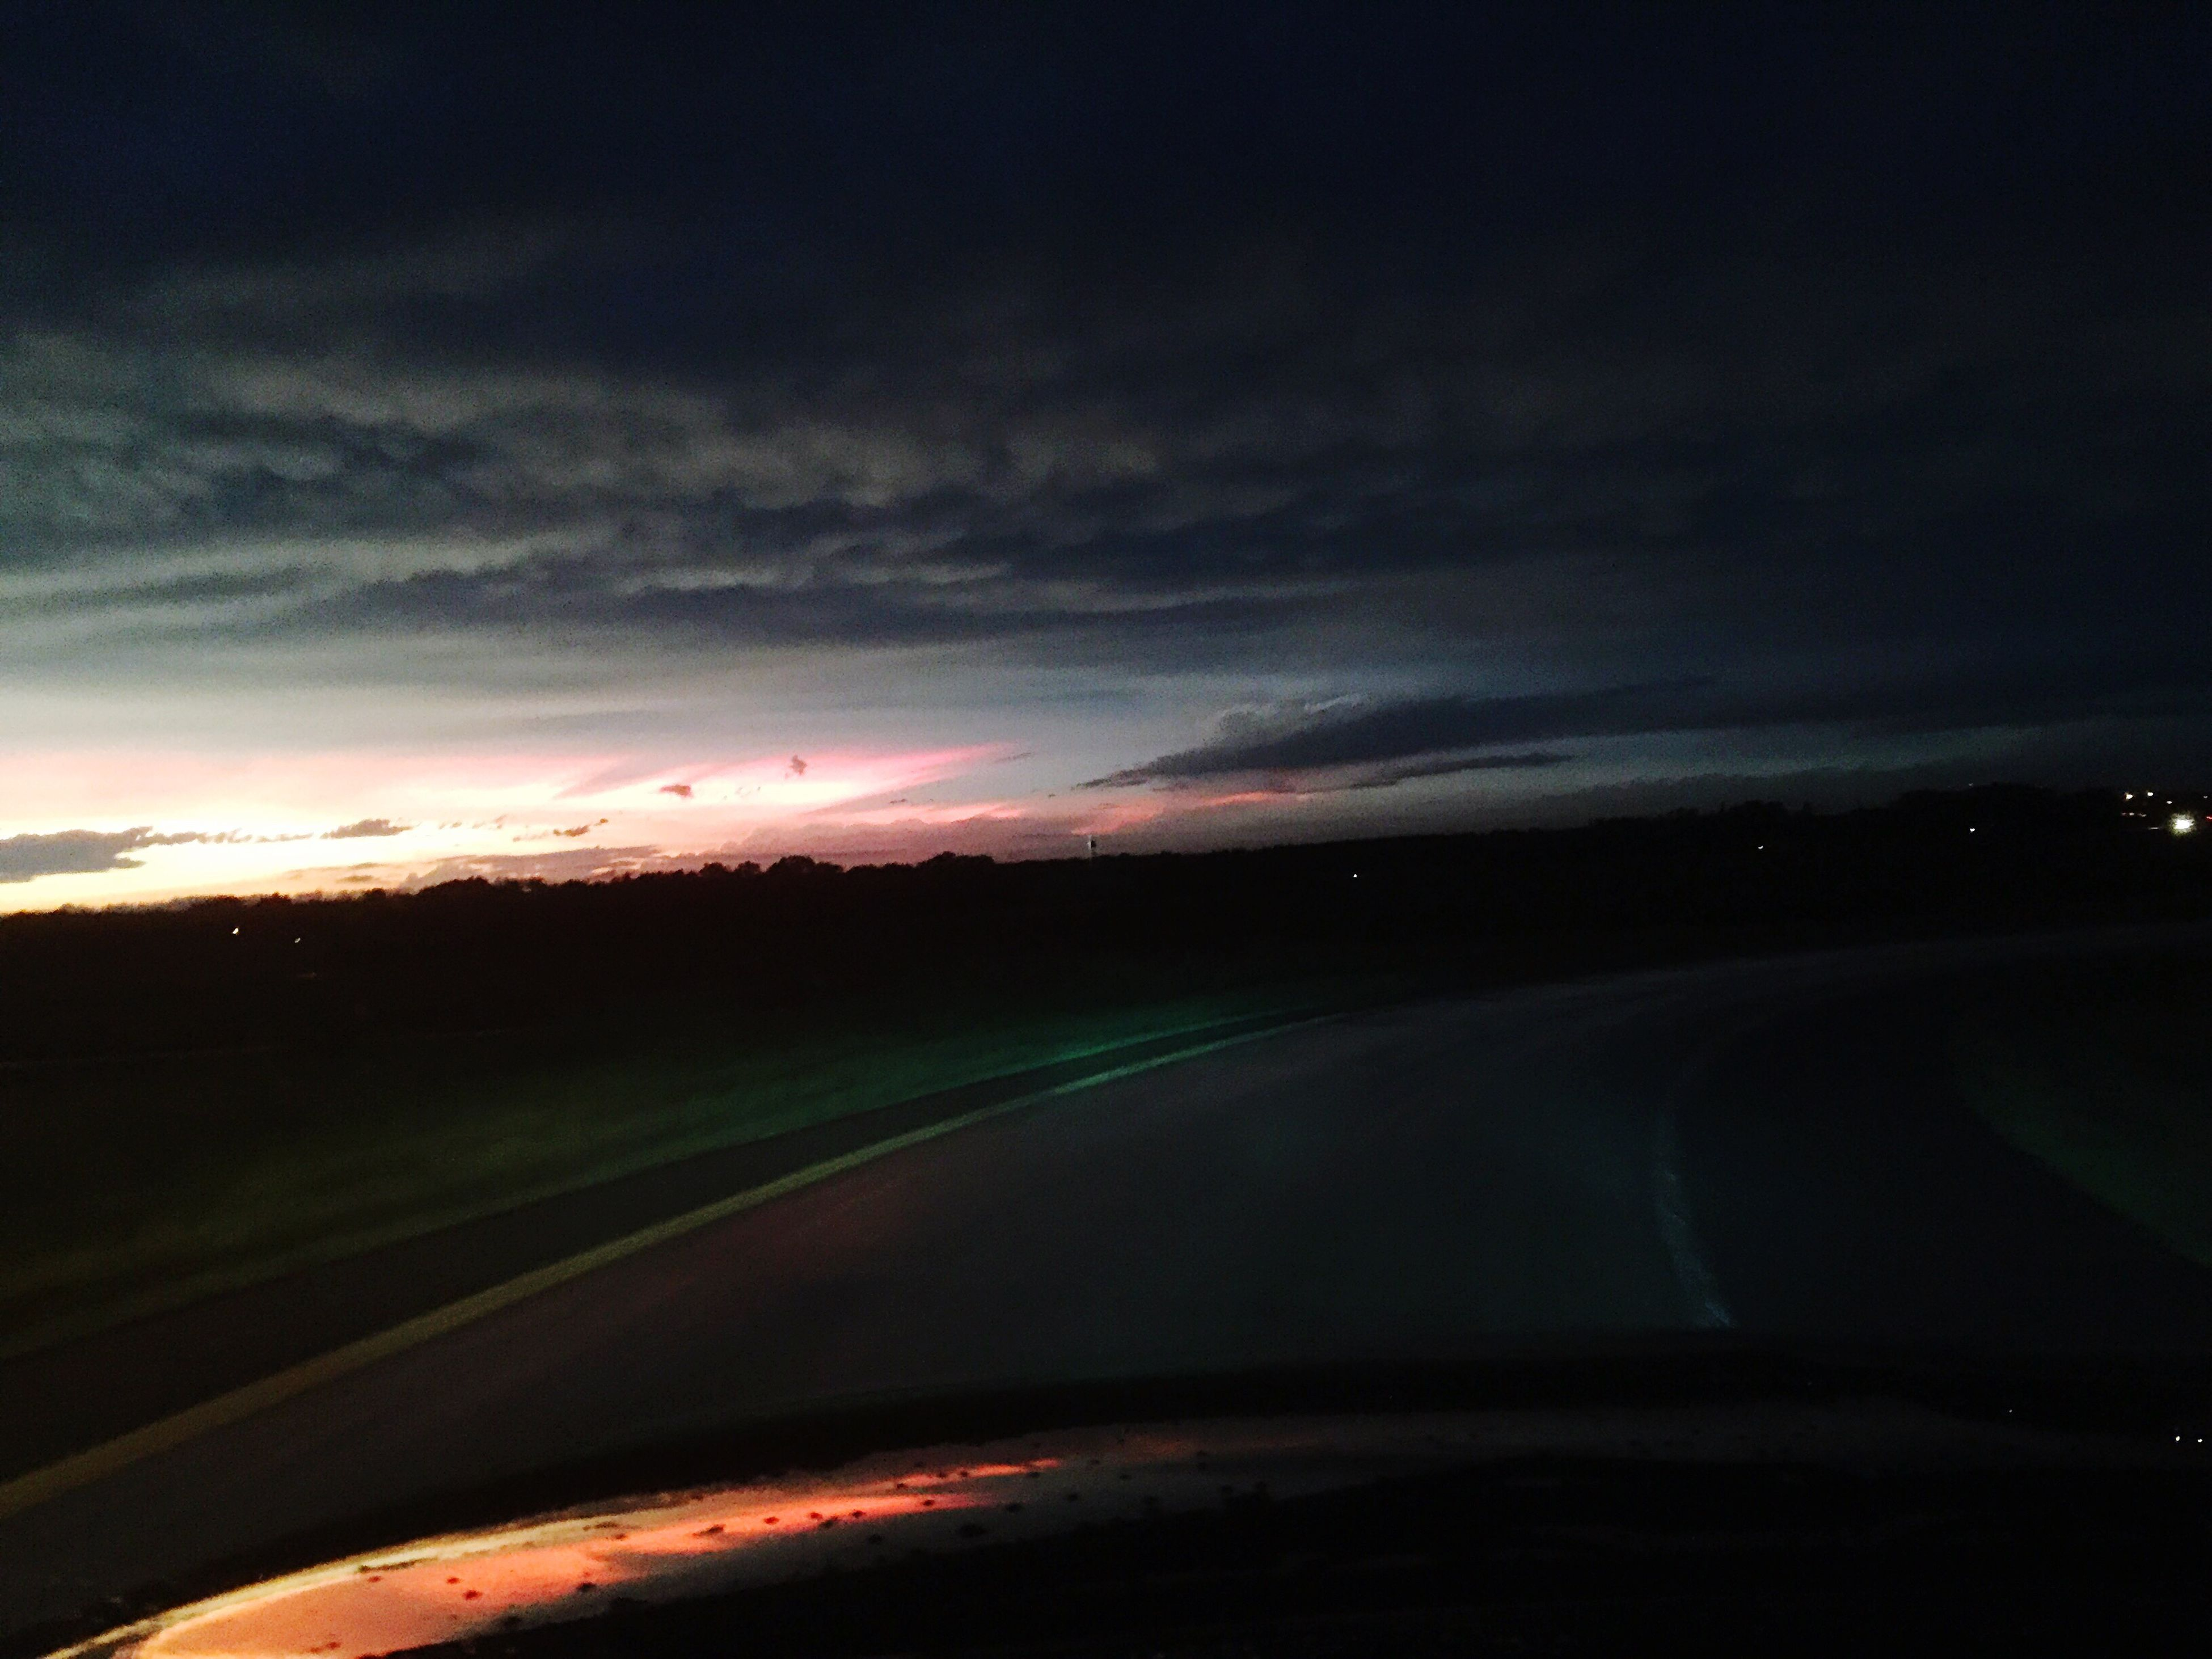 road, landscape, sunset, transportation, tranquil scene, street, scenics, empty, tranquility, cloud, cloud - sky, sky, the way forward, outdoors, nature, beauty in nature, calm, cloudy, long, non-urban scene, country road, countryside, dark, majestic, storm cloud, dramatic sky, remote, outline, cloudscape, atmospheric mood